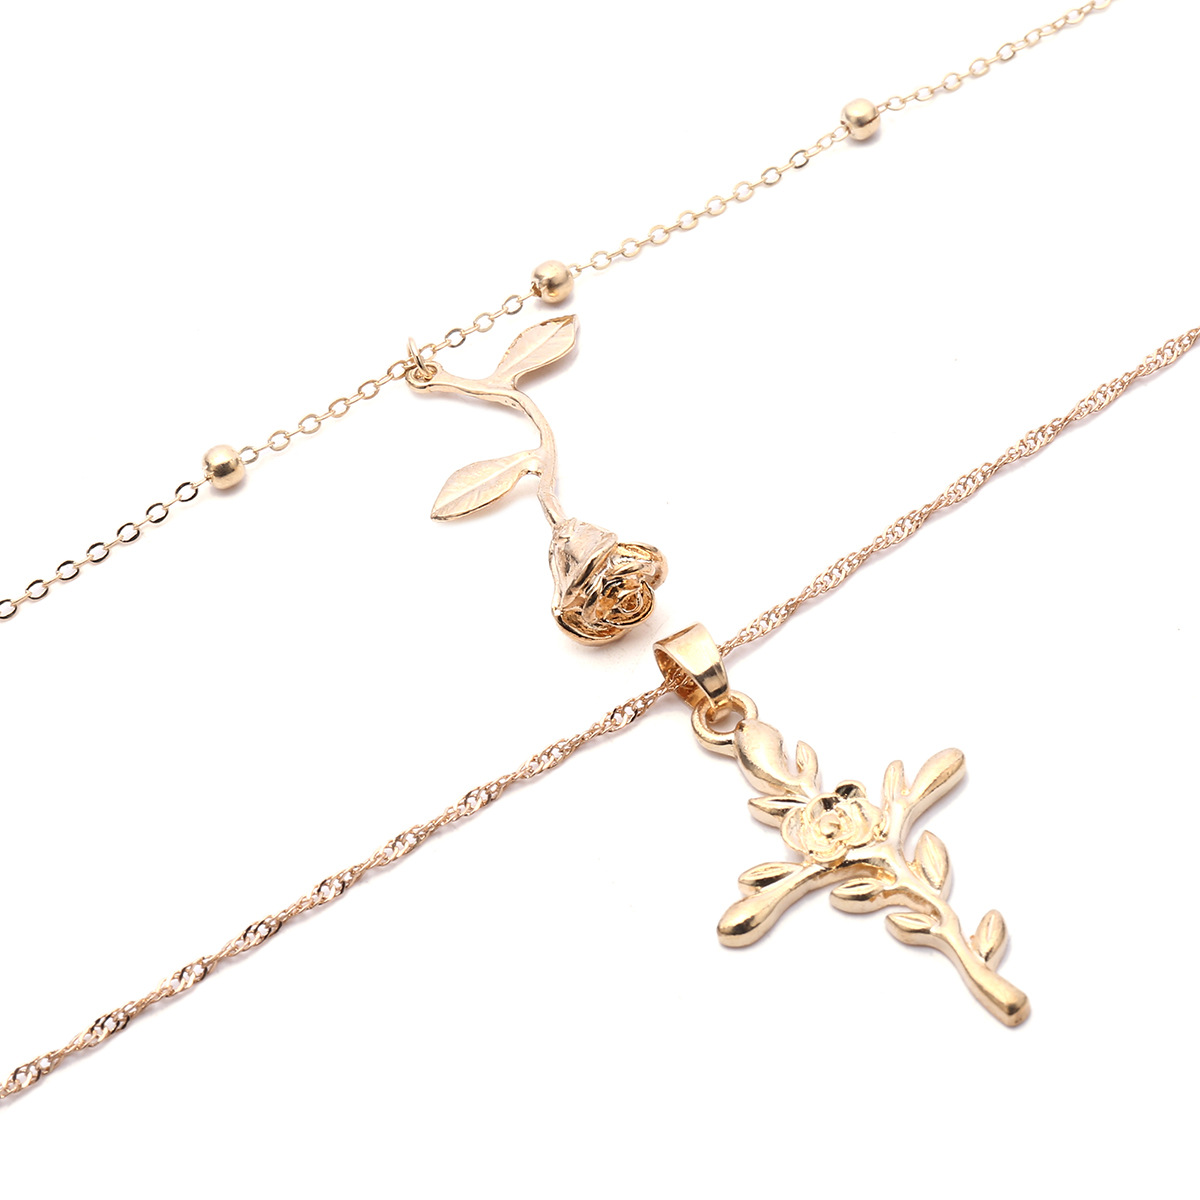 Alloy Fashion Flowers necklace(Golden) NHXR2320-Golden